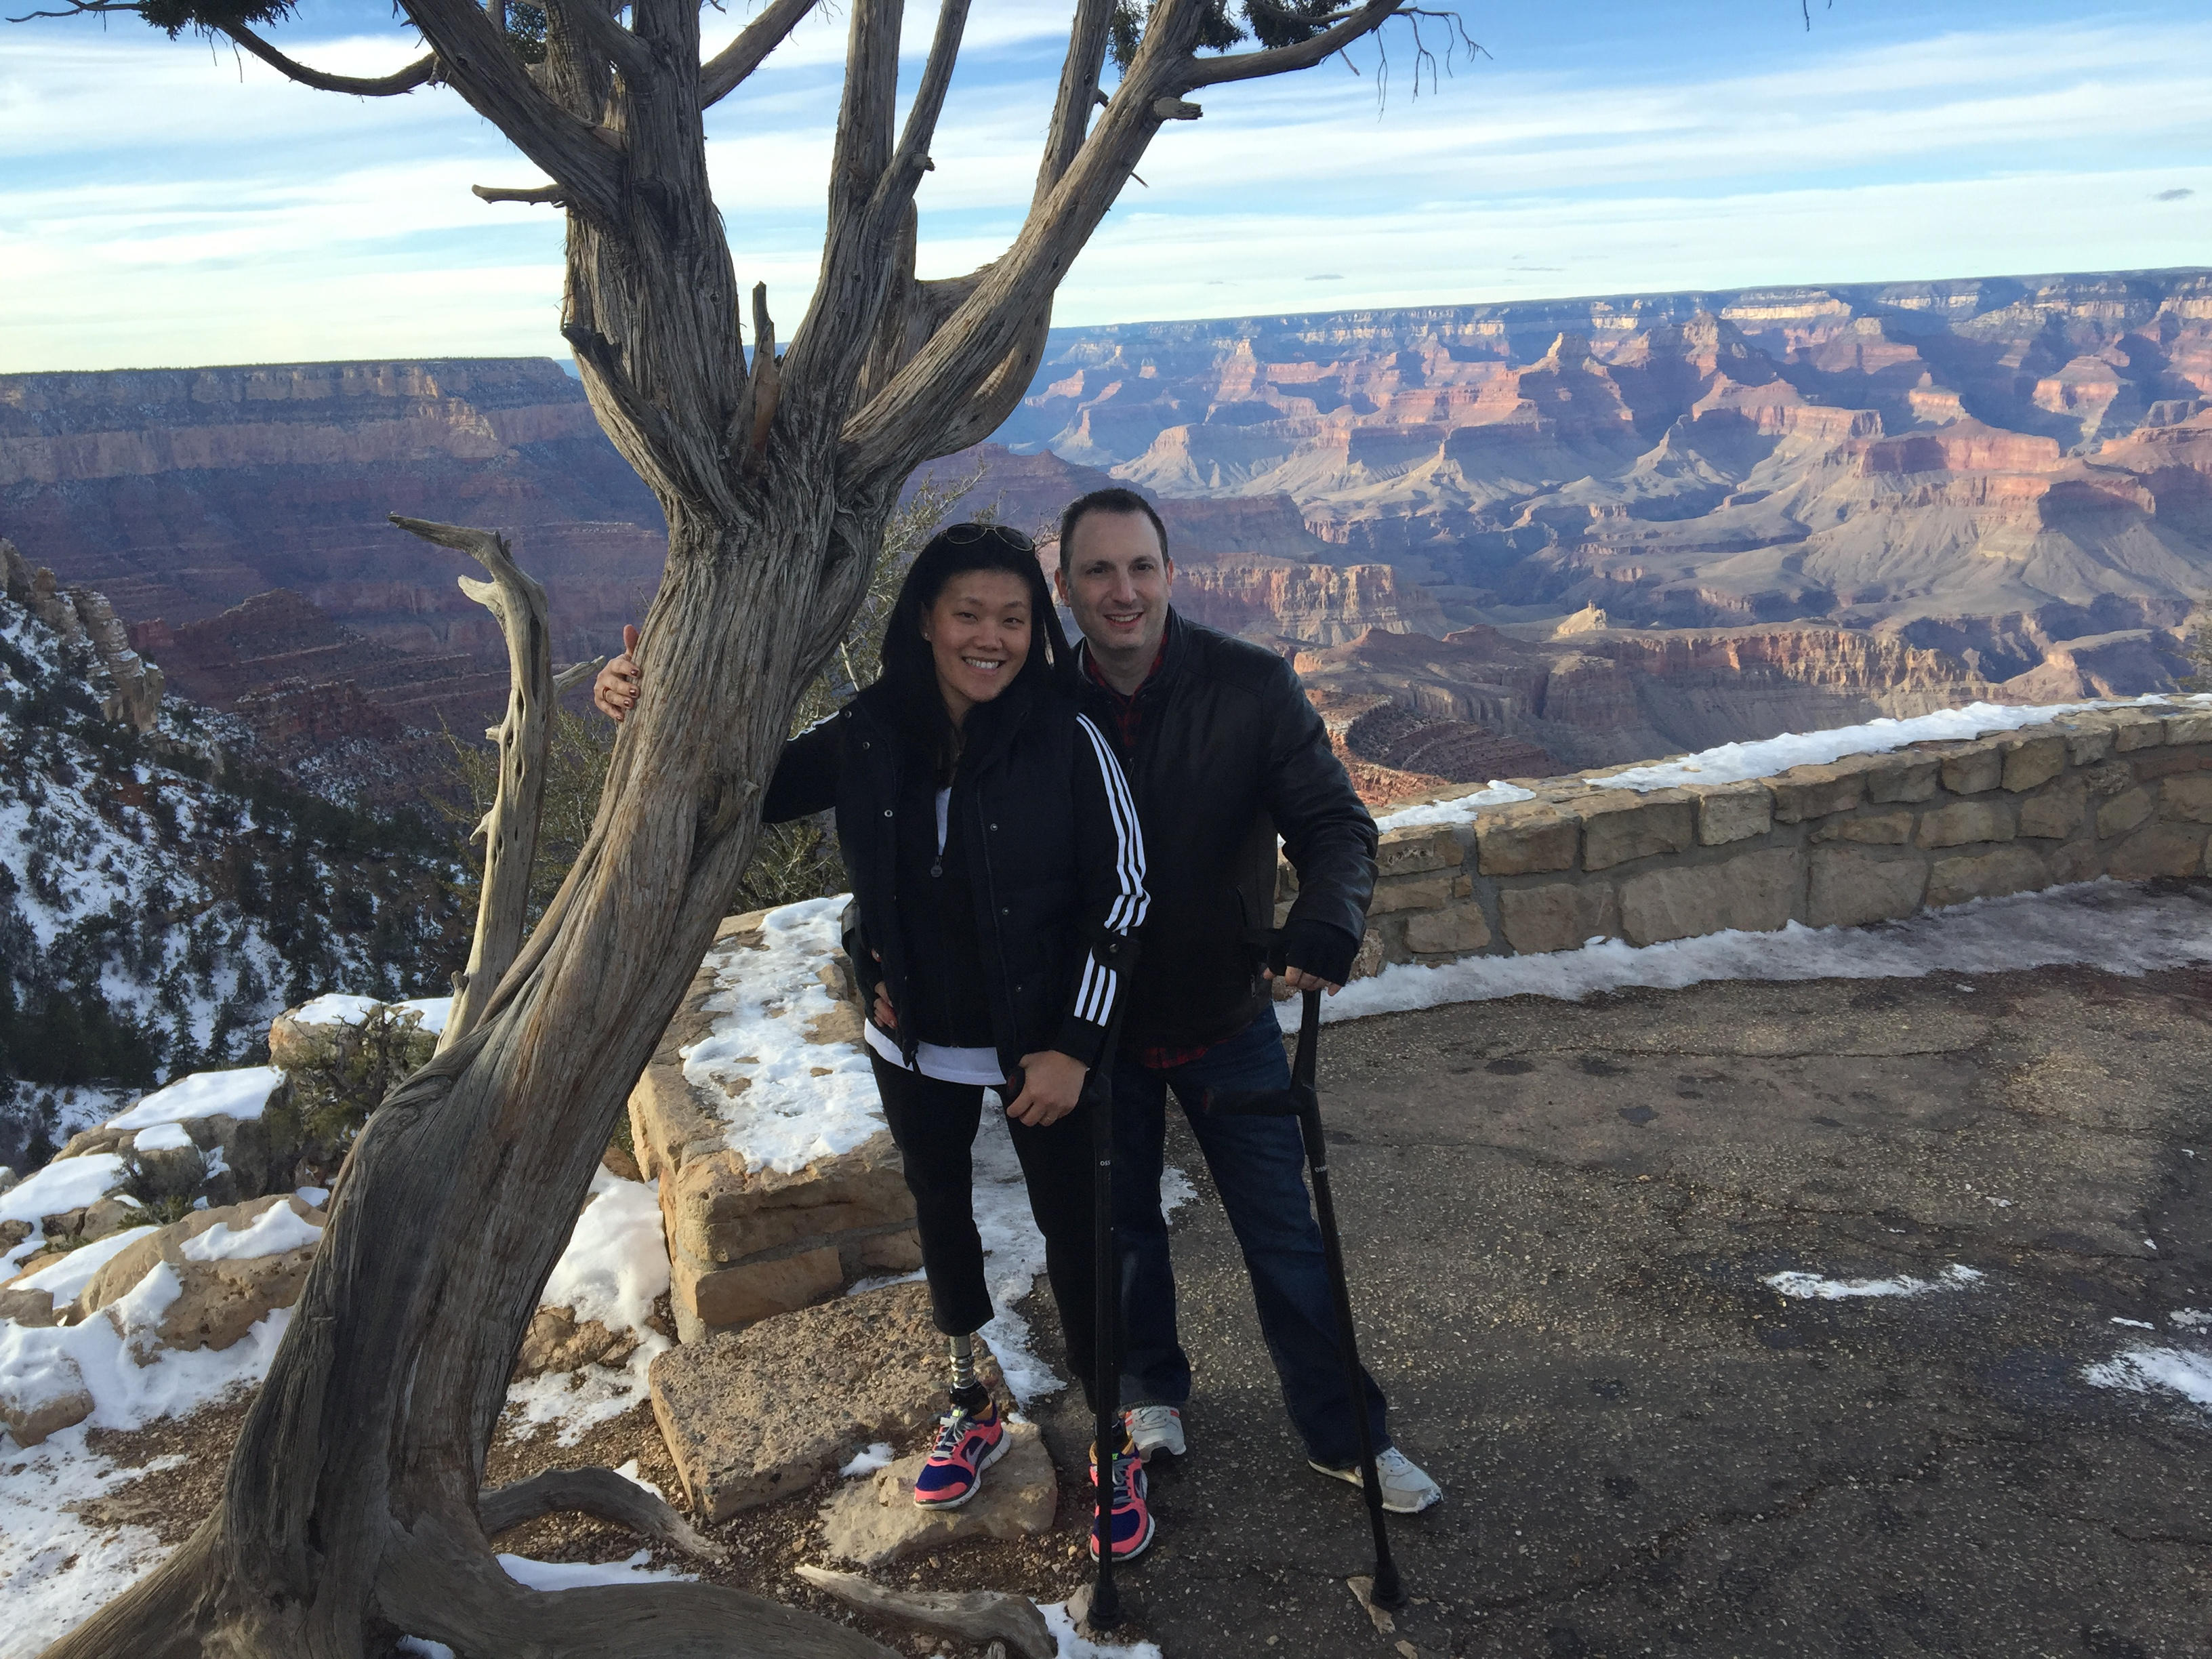 Me & Ben at the Grand Canyon